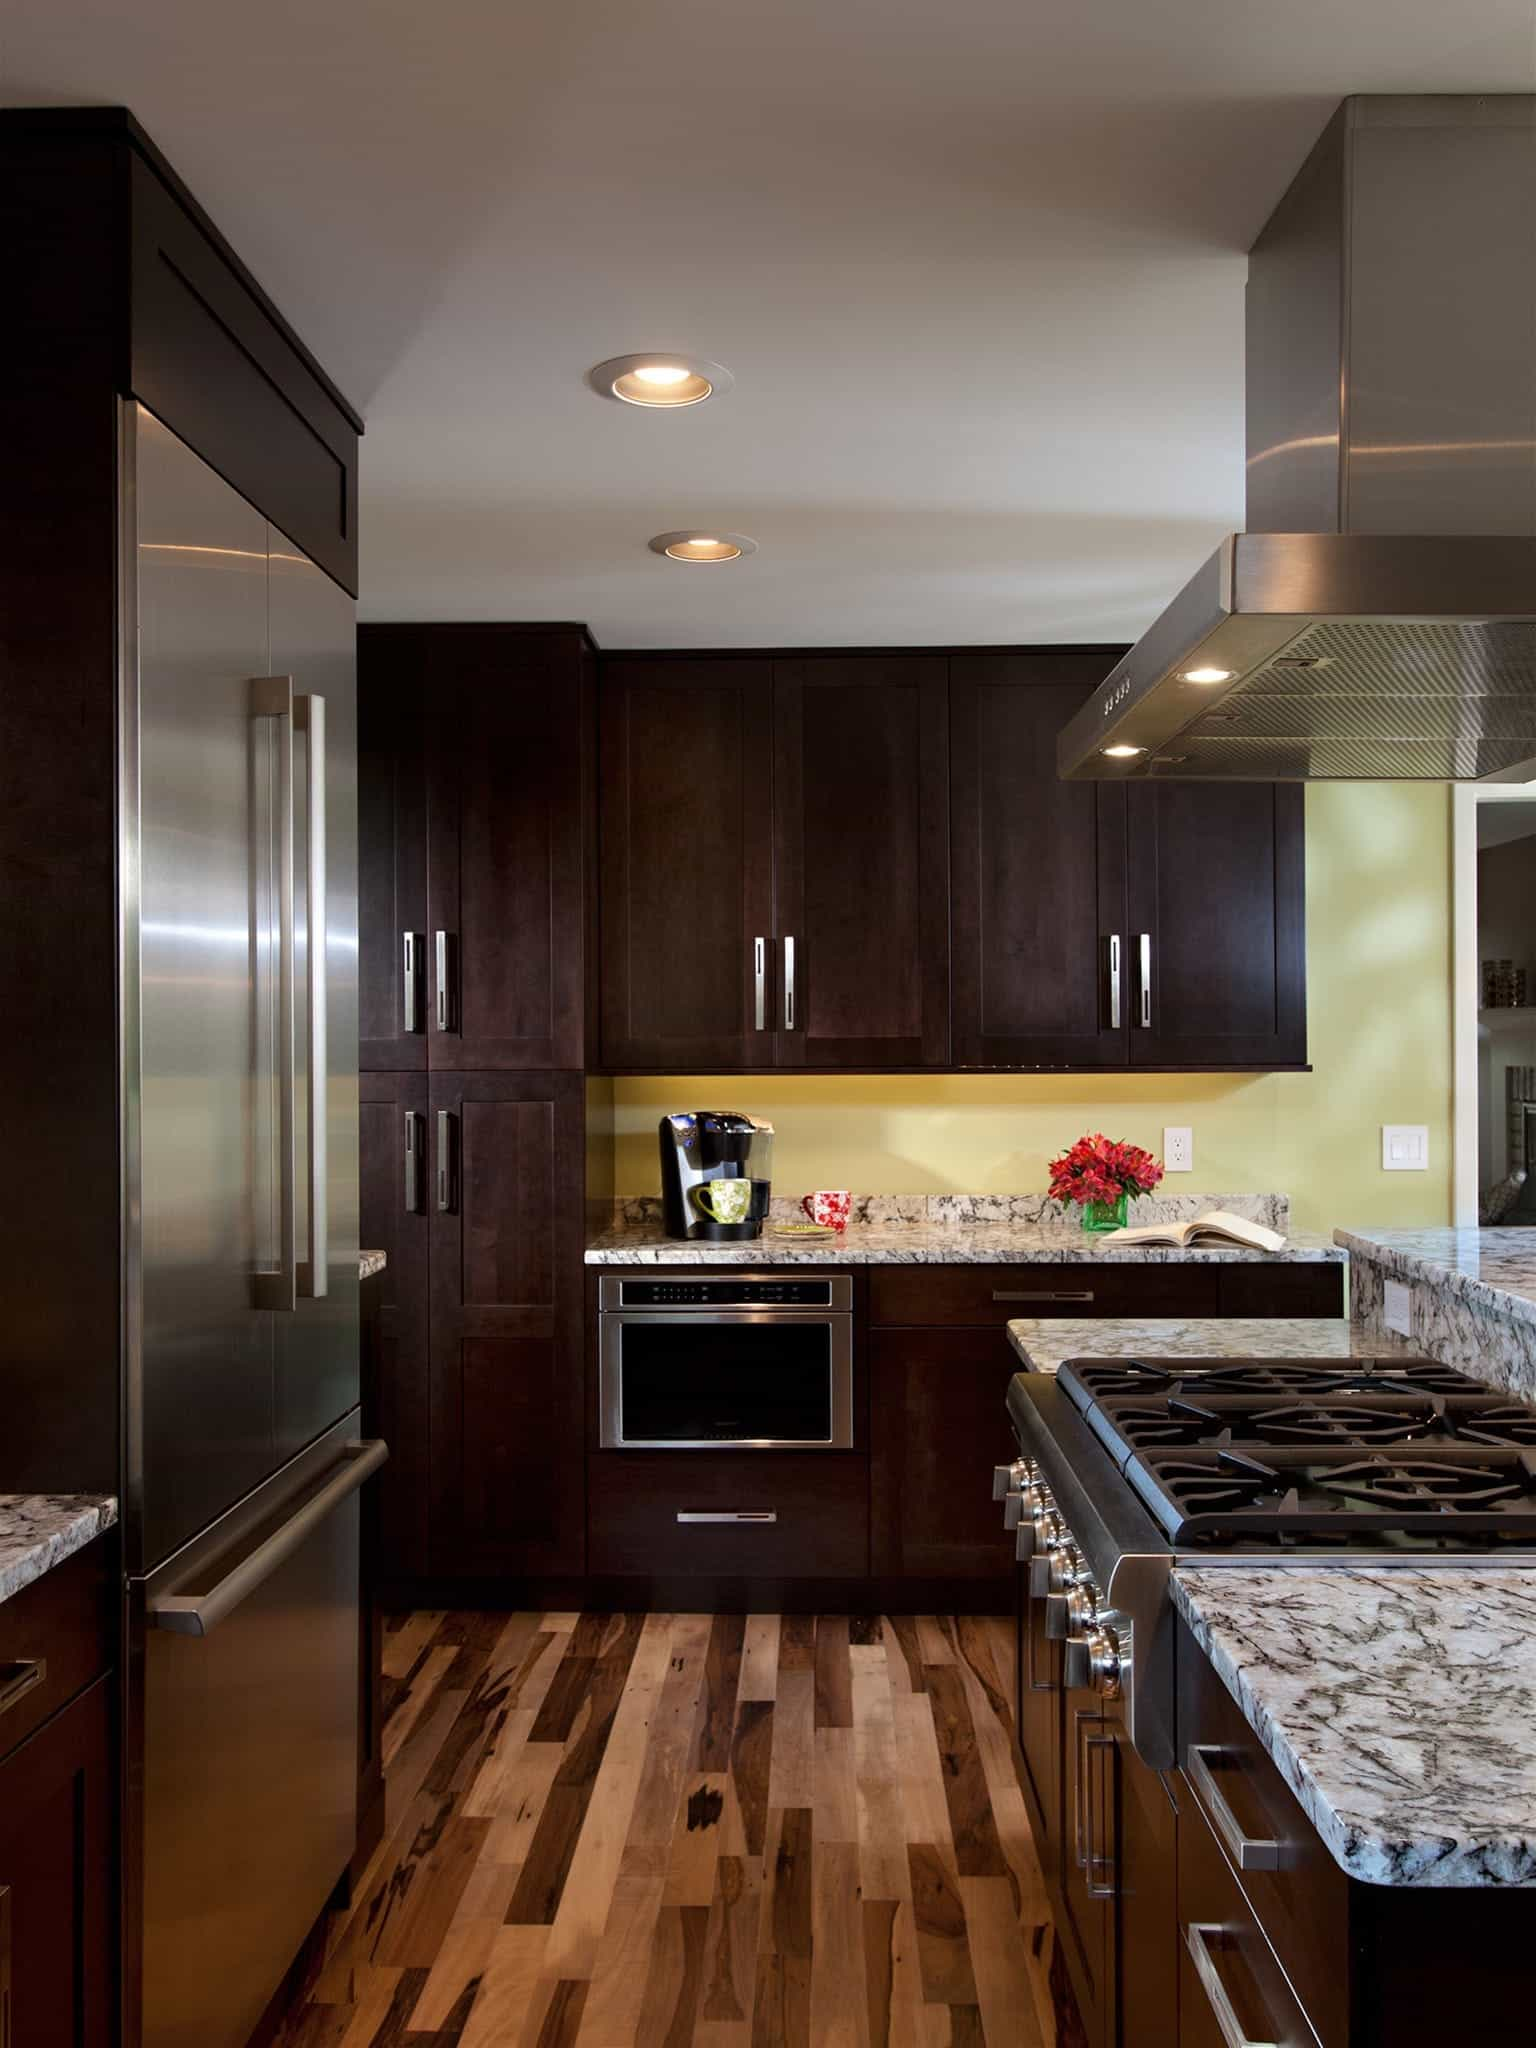 Beautiful Hardwood Floors In Transitional Kitchen (Image 2 of 12)